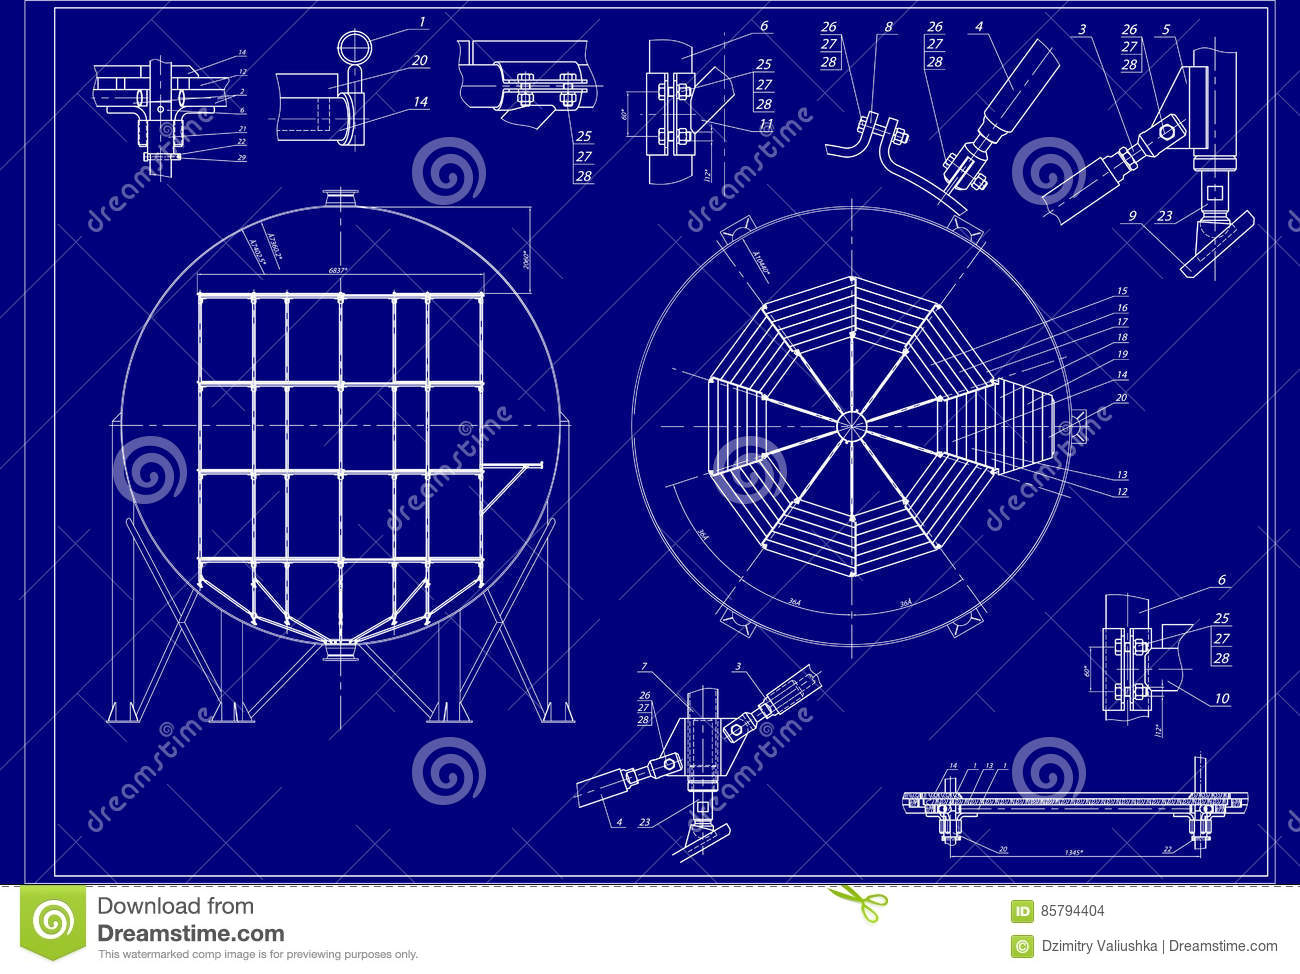 Drawing of installation scaffolding into spherical gasholder stock drawing of installation scaffolding into spherical gasholder vector background technical design engineering backgrounds blueprints blue and white malvernweather Gallery